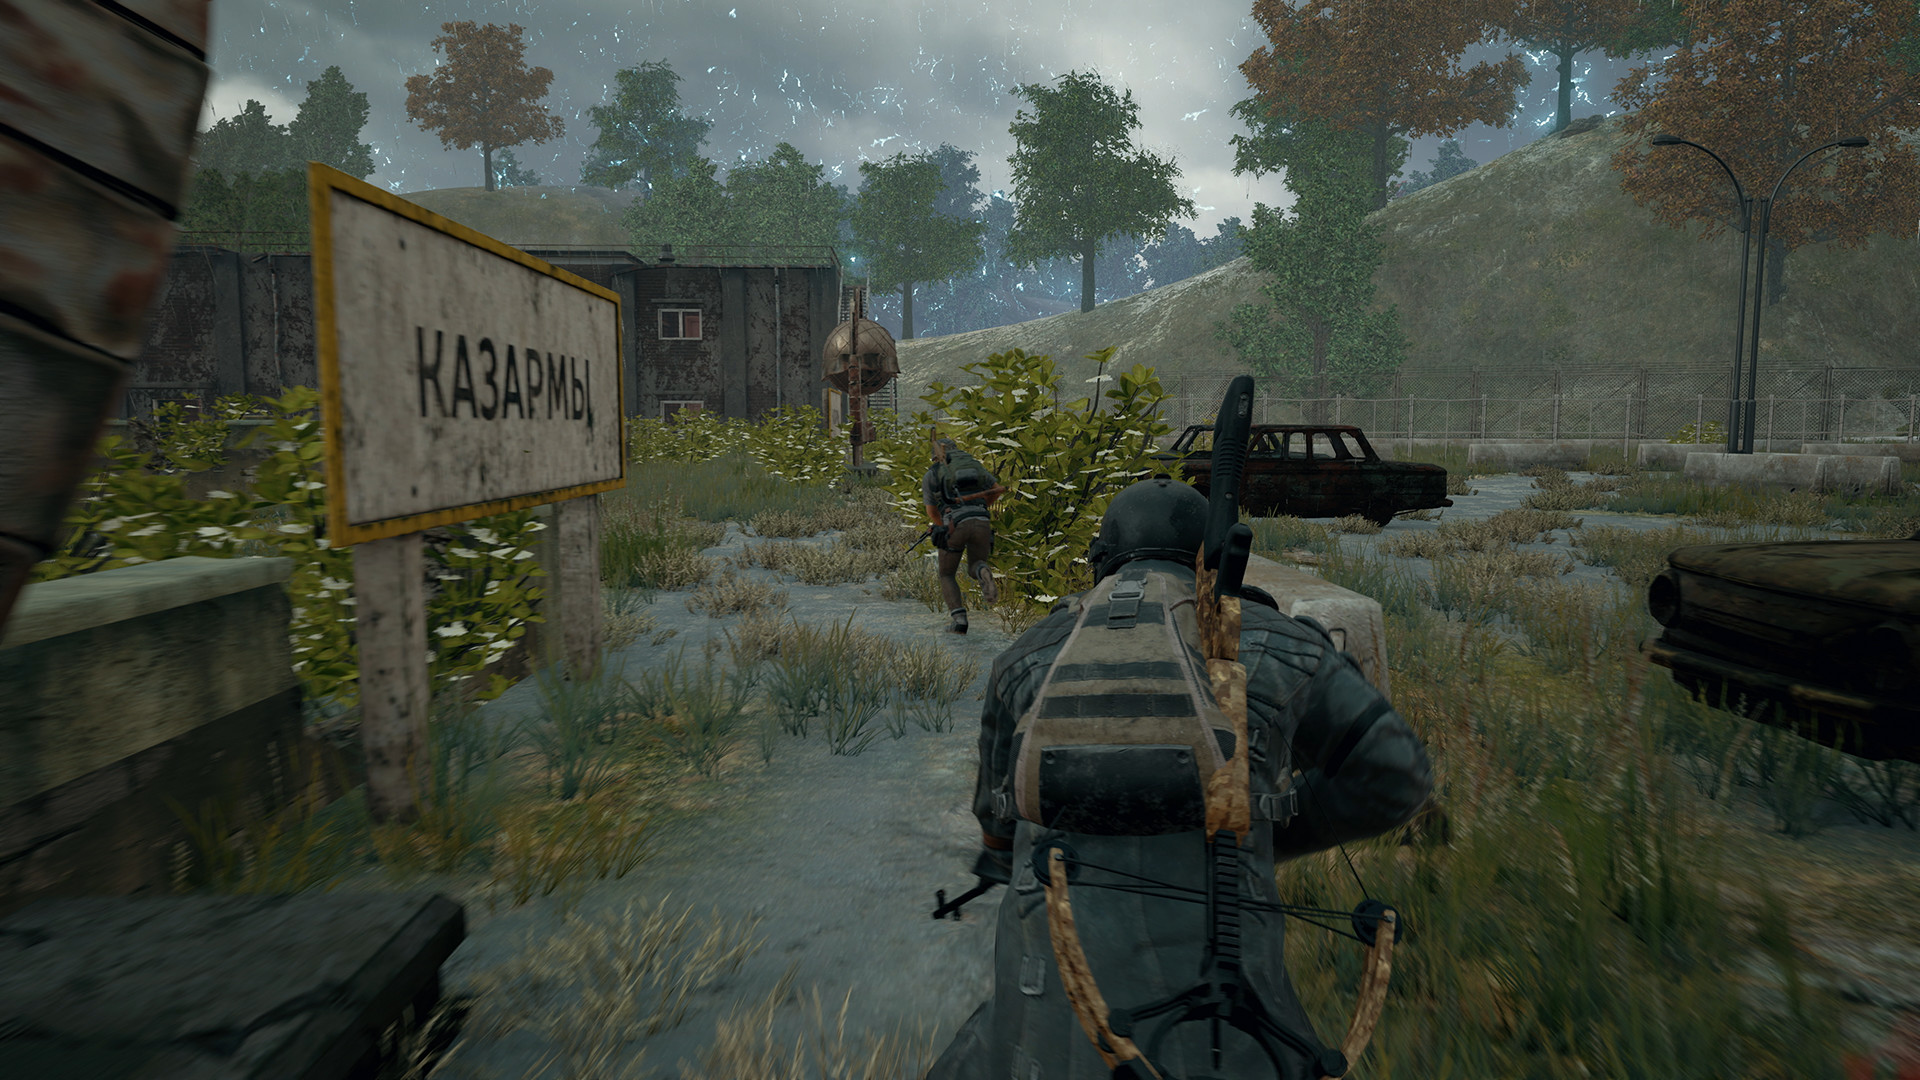 PUBG PC System Requirements - Can I Run It? - PCGameBenchmark